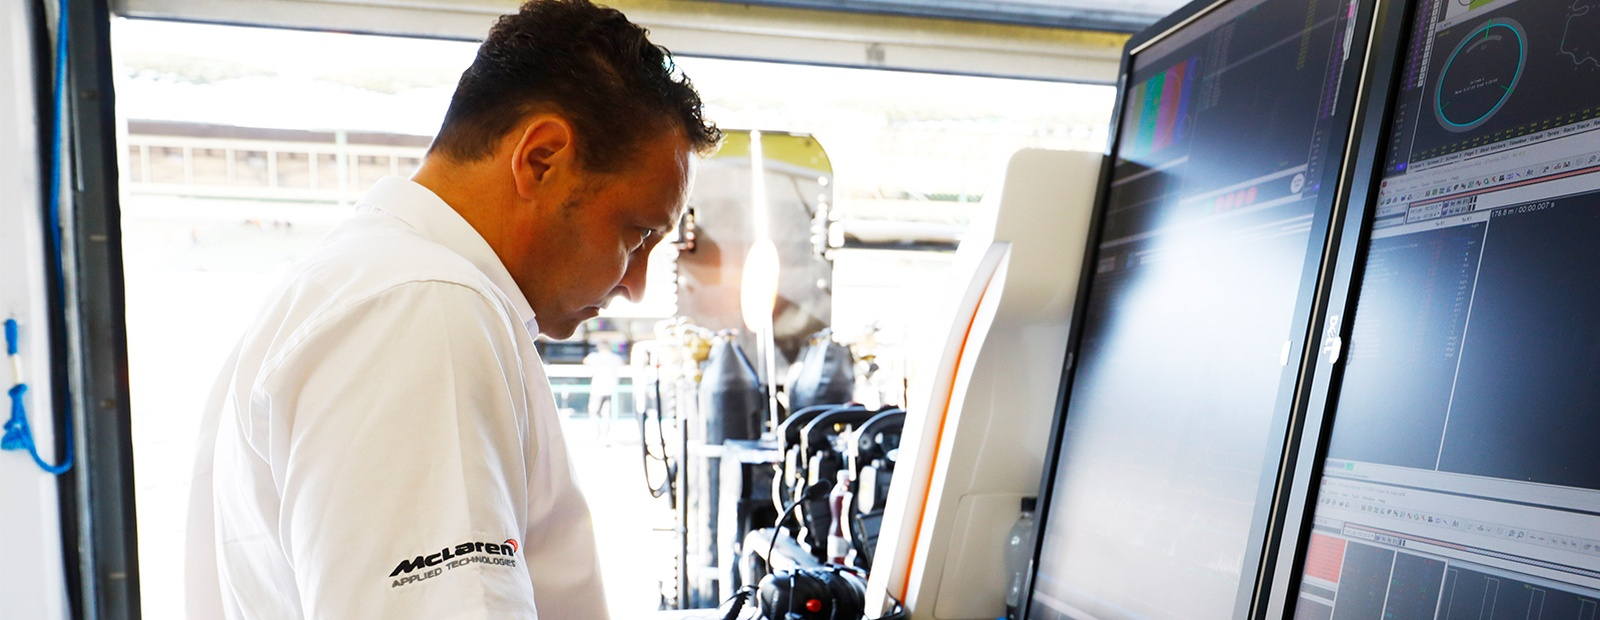 McLAREN INTRODUCES NEW DATA VIEWER AT F1 TEST